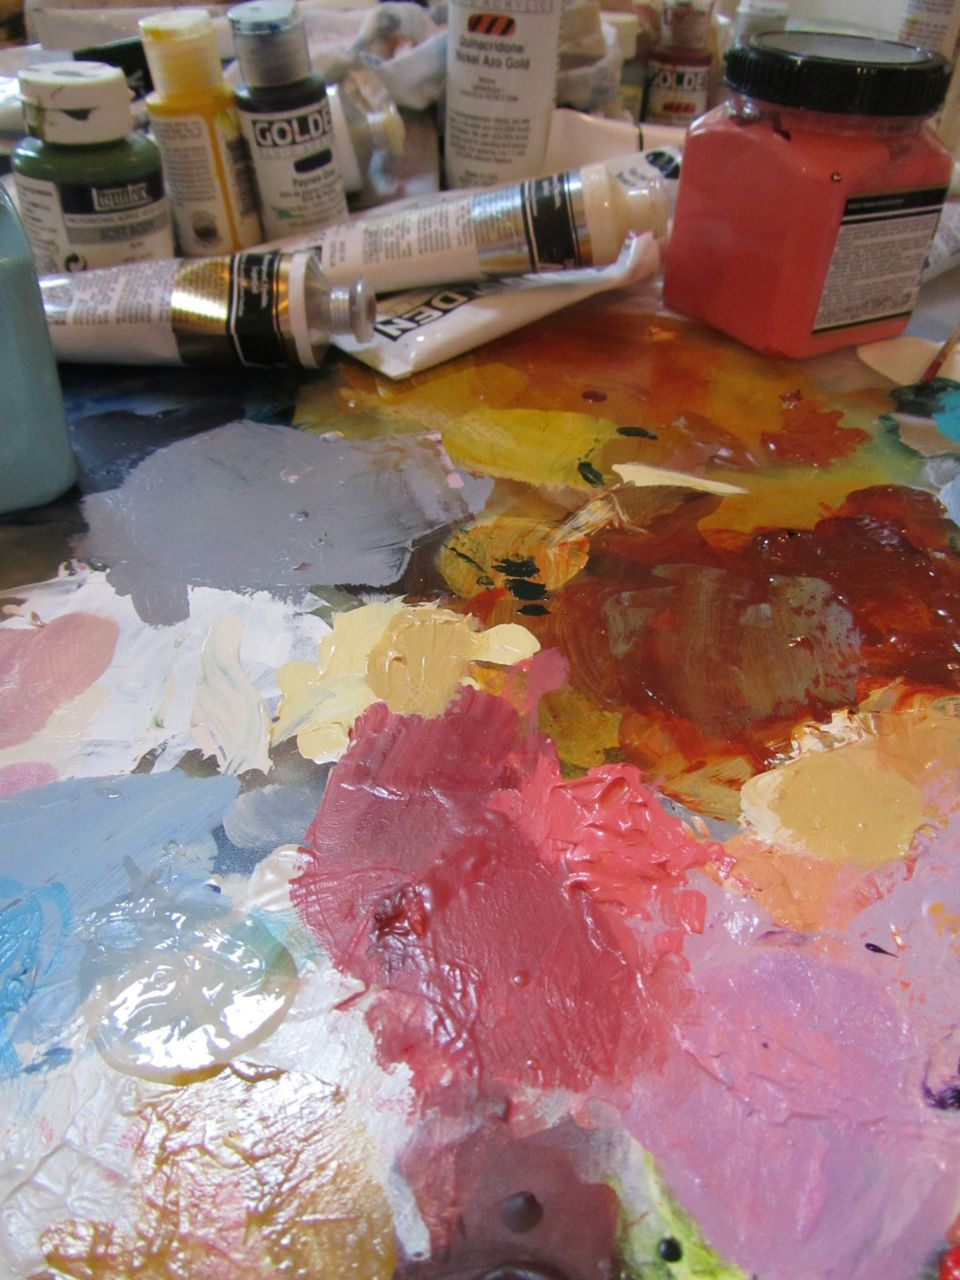 A close up of the palette on my worktable